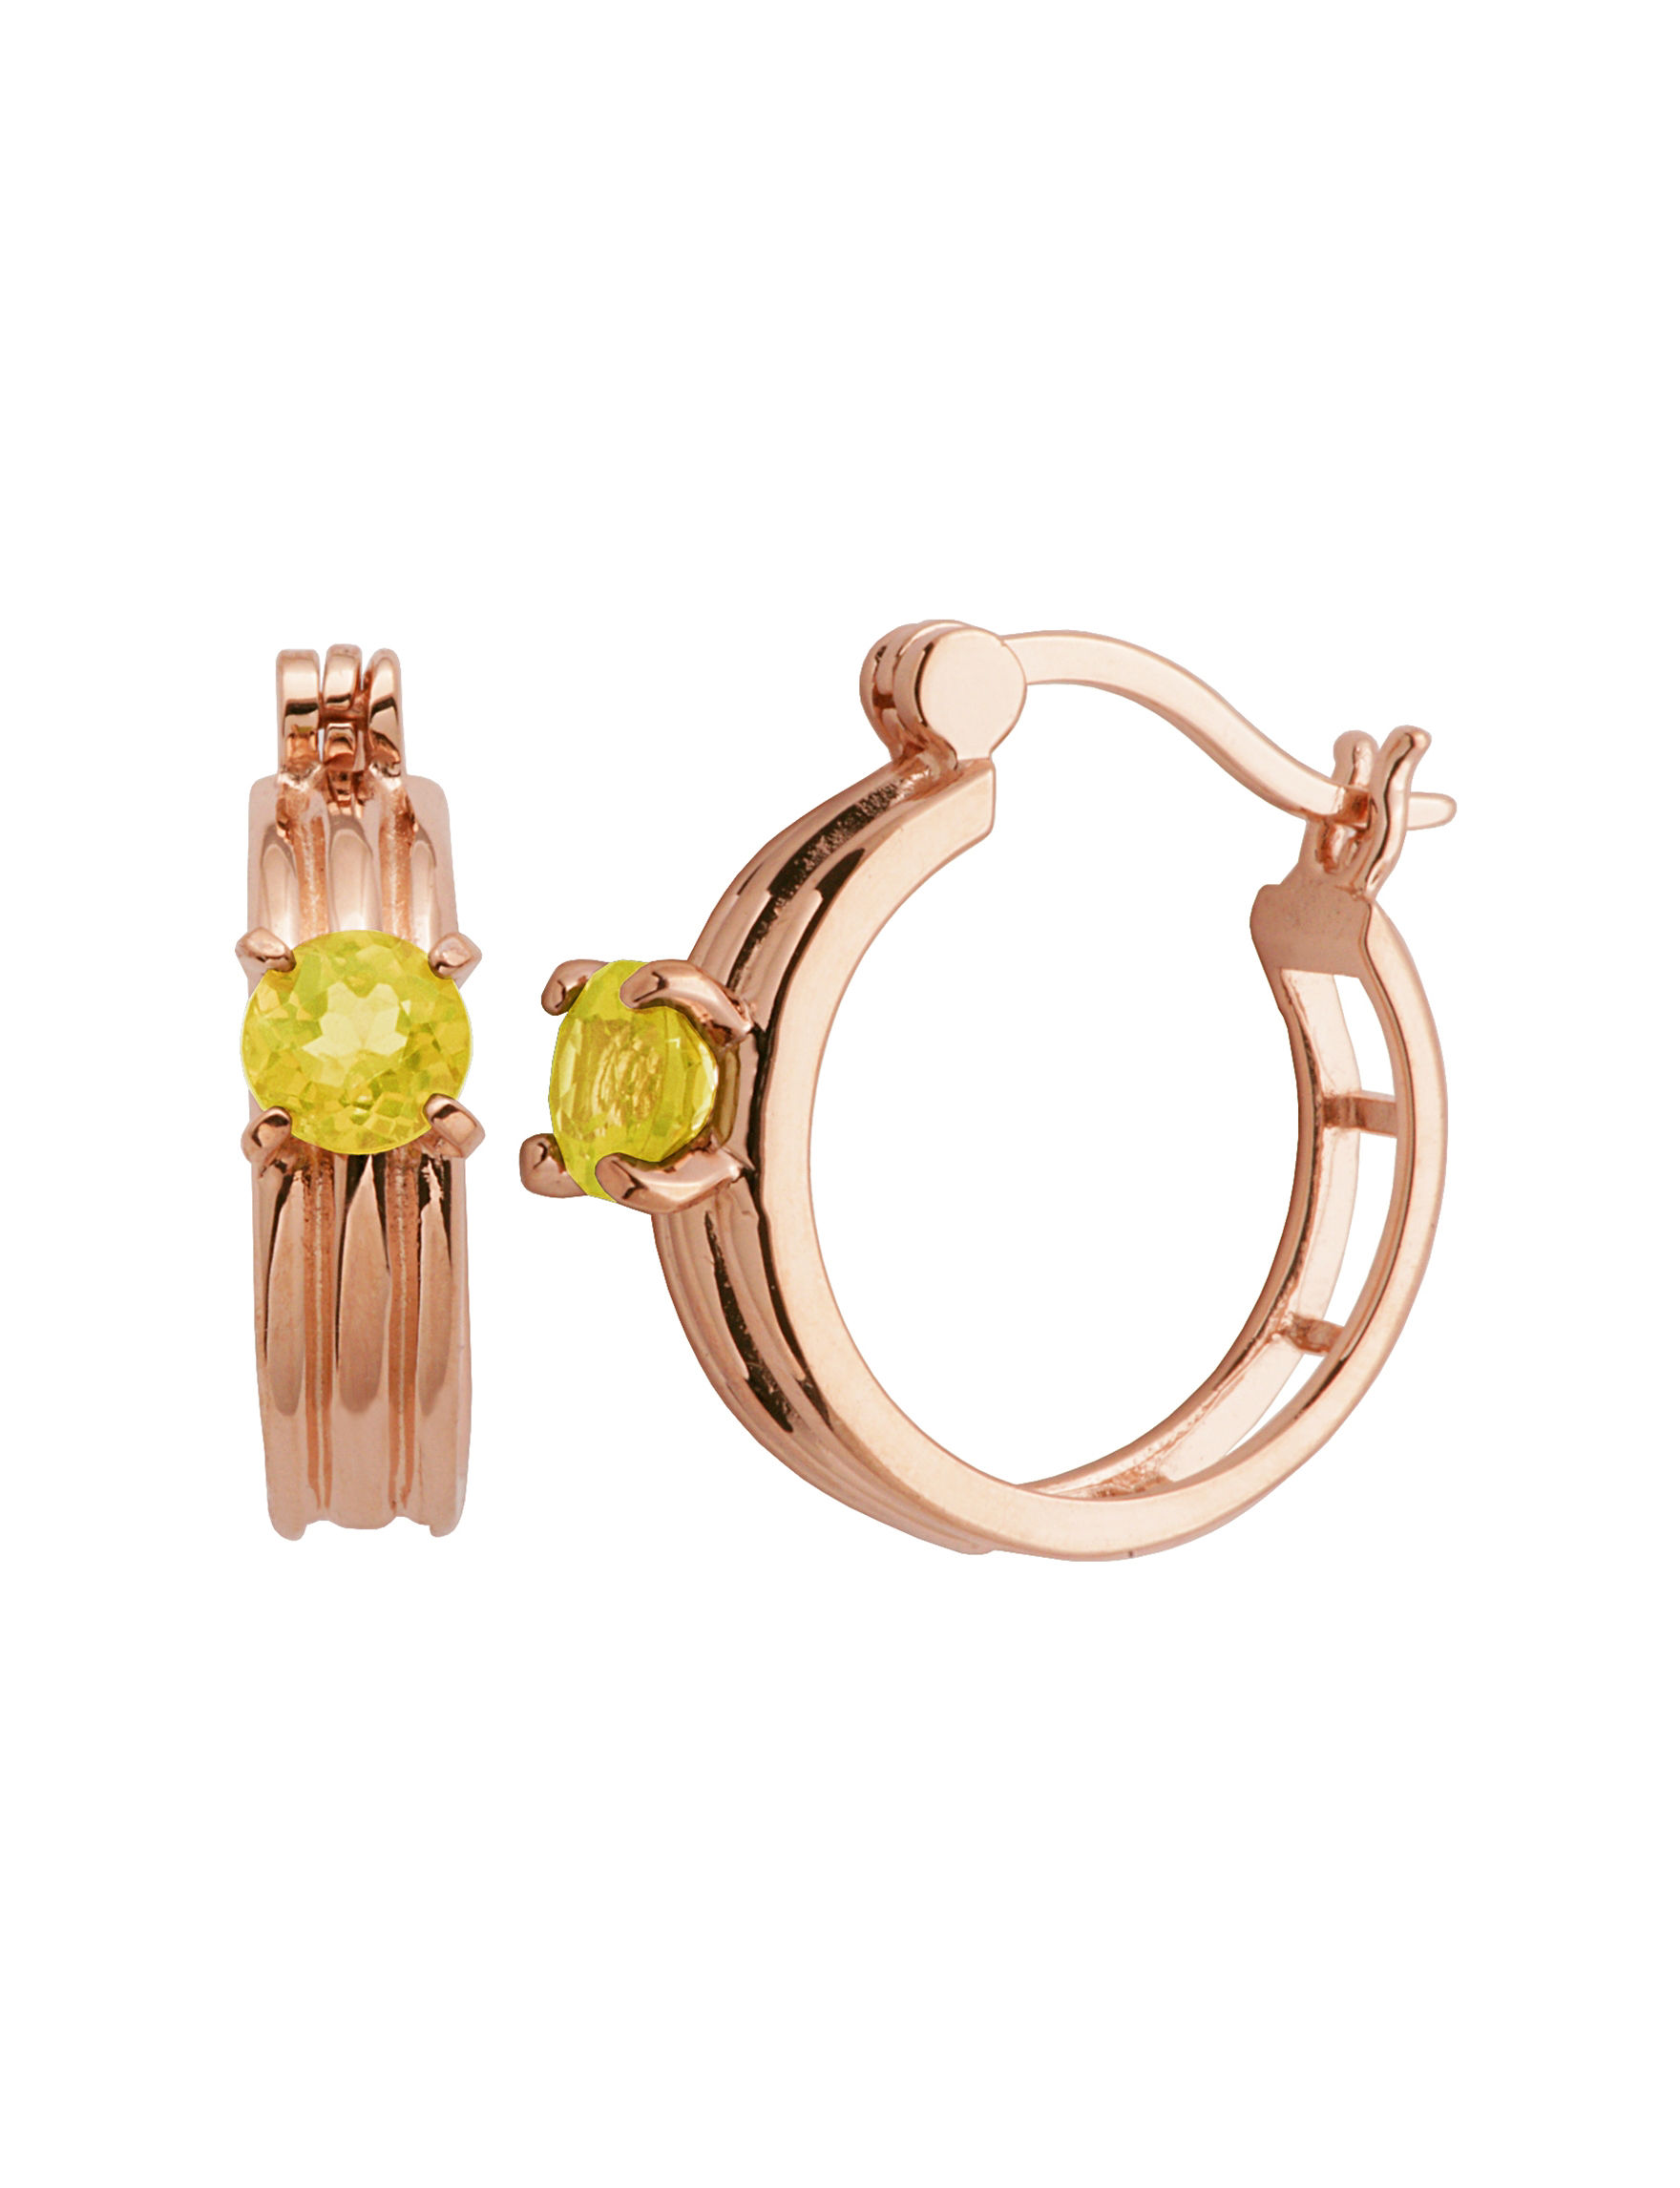 PAJ INC. Rose Gold Hoops Earrings Fine Jewelry